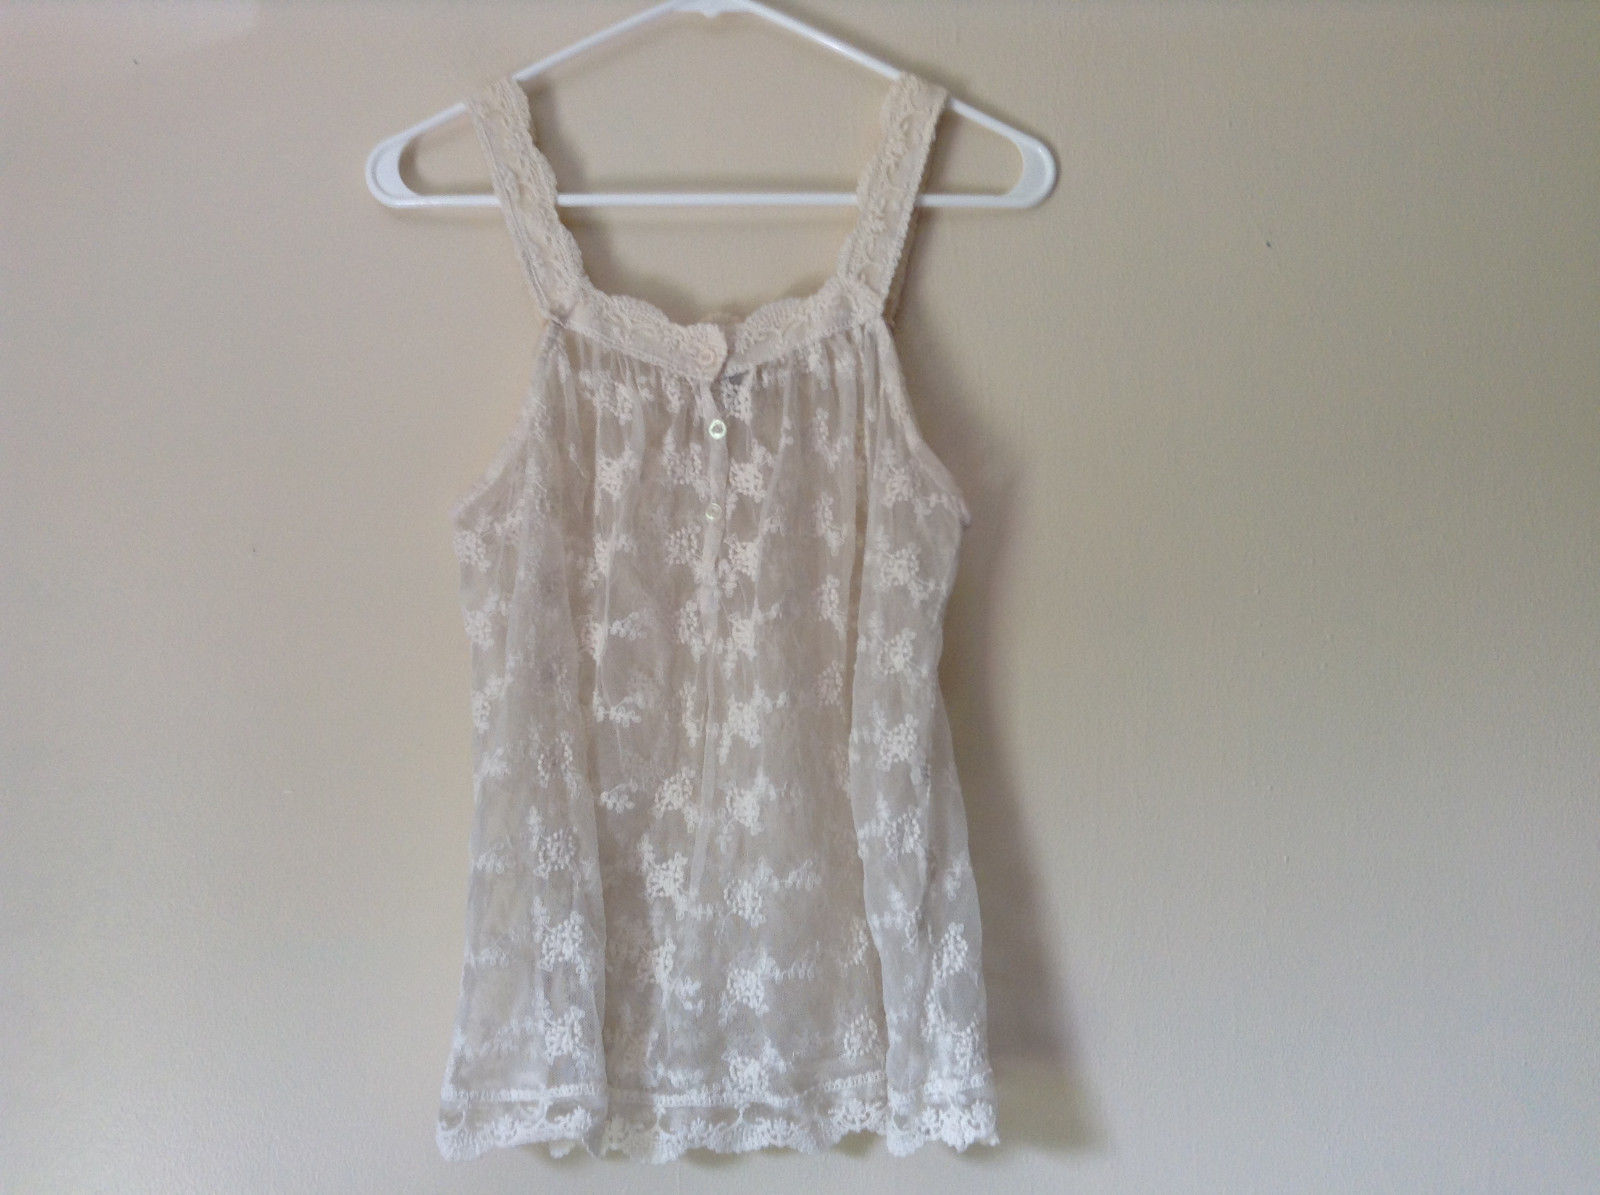 Off White Tank Top See Through Laced with Buttons by American Rag Size Small